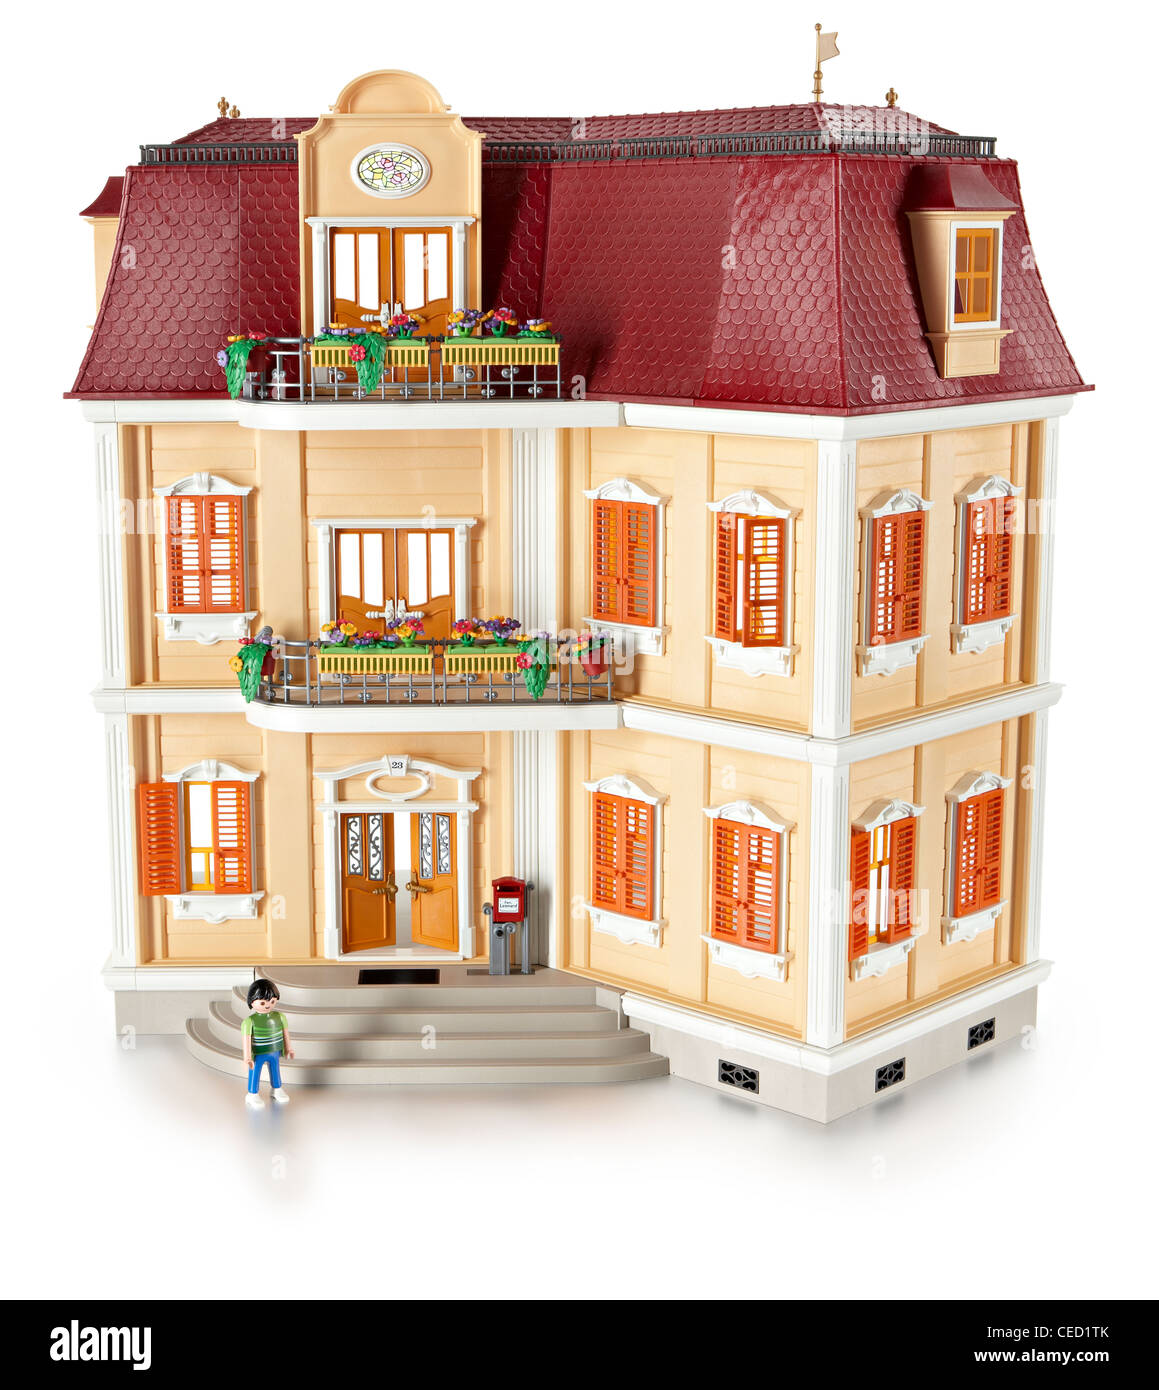 Play mobile mansion house - Stock Image